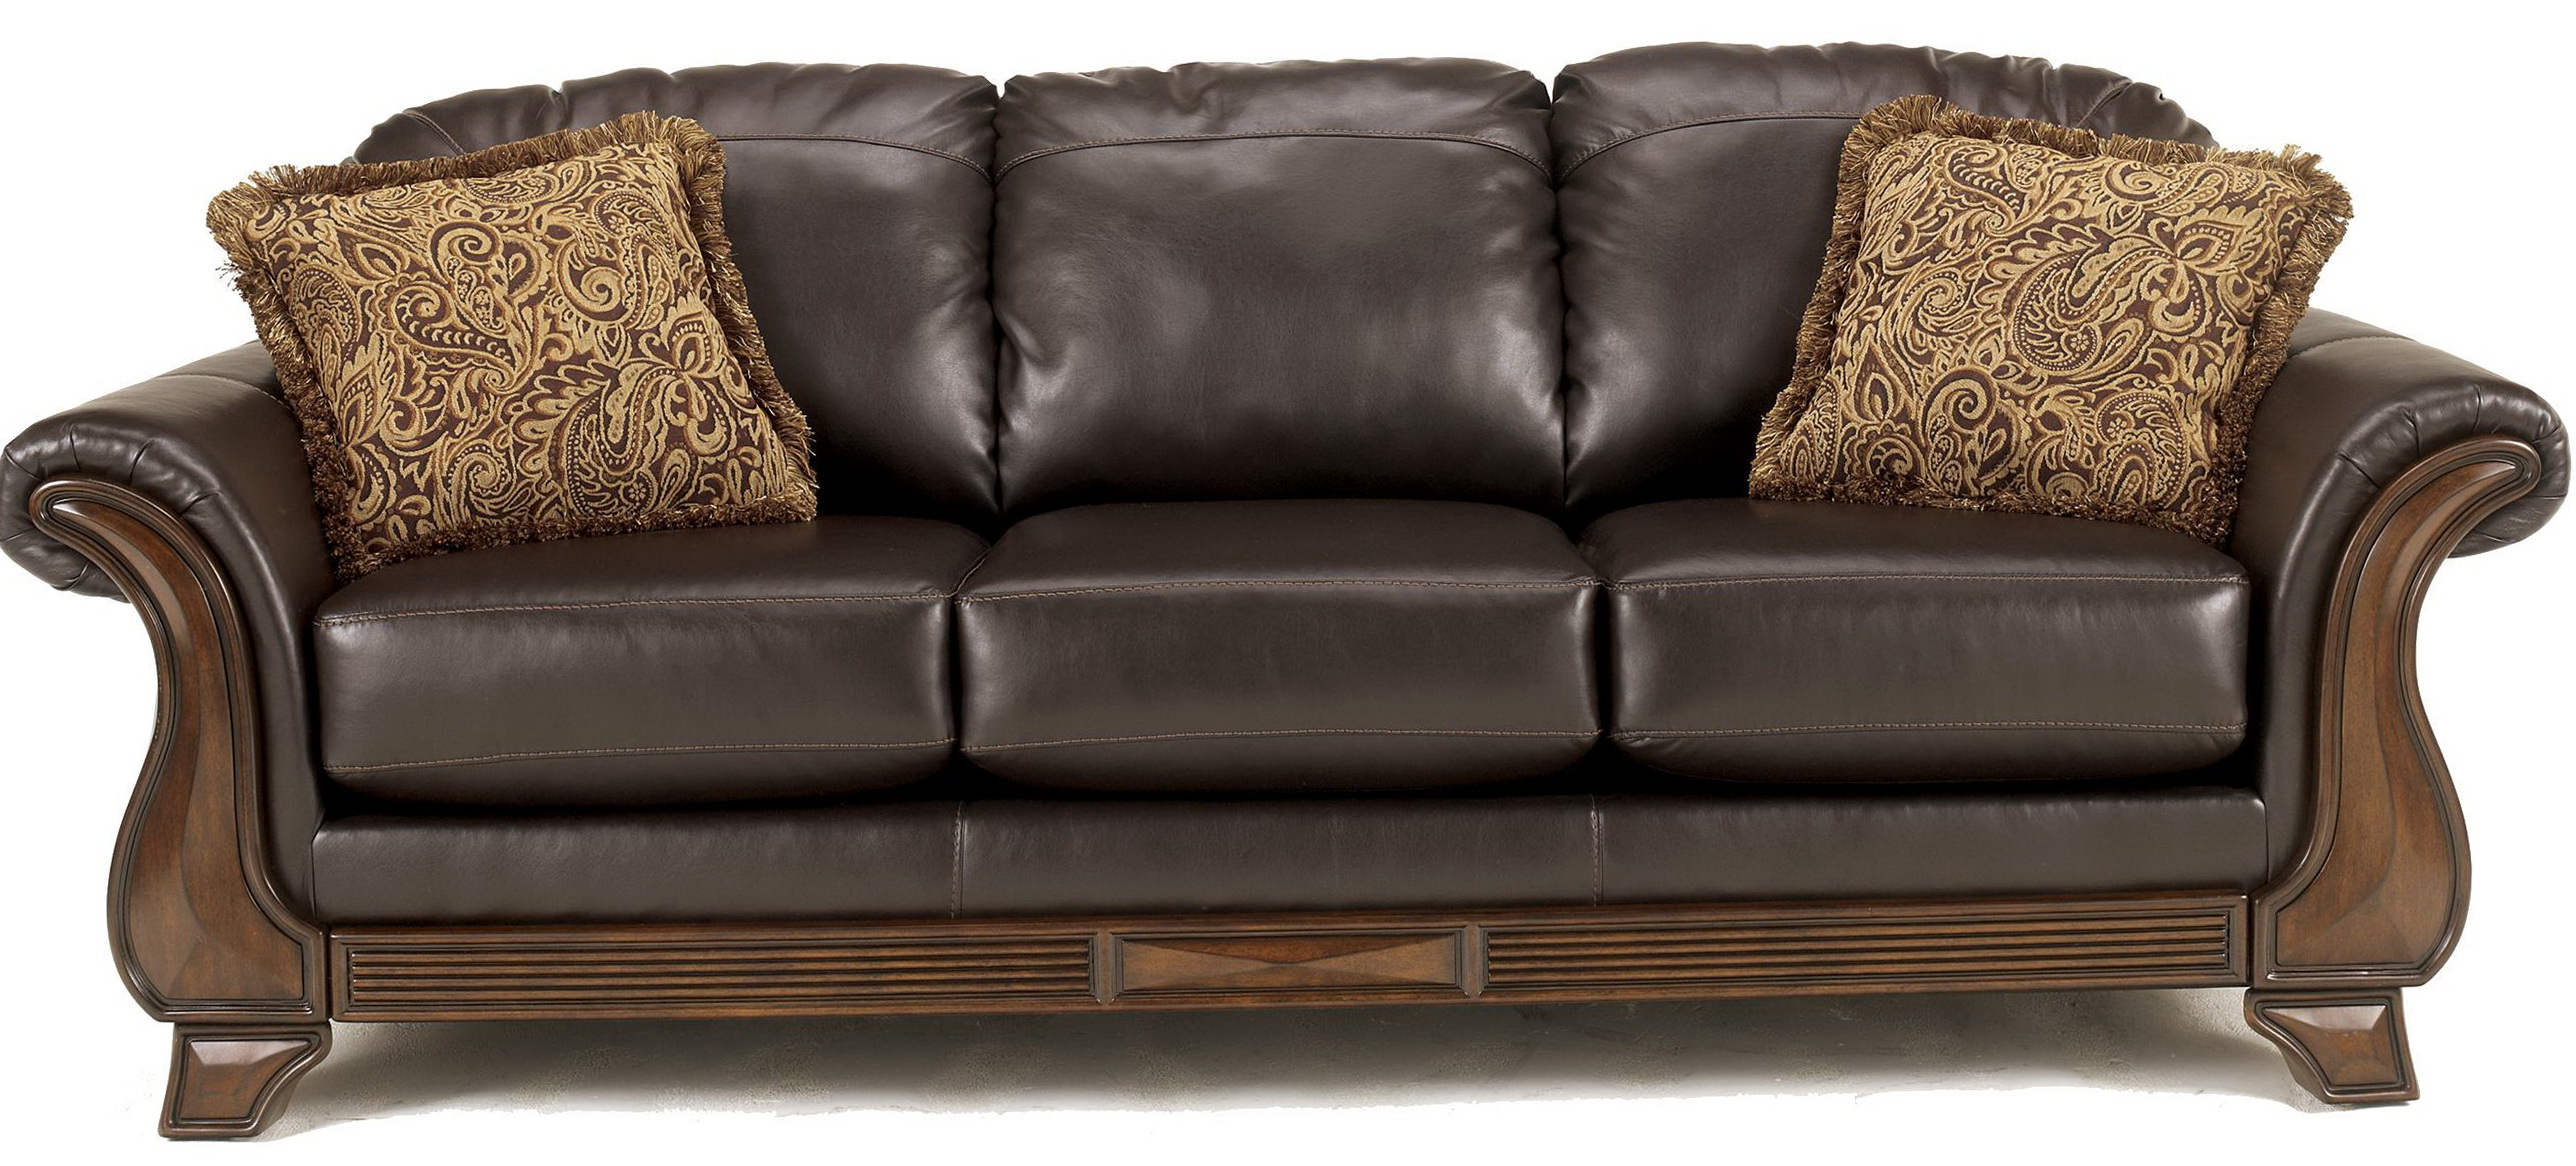 Faux Leather Sleeper Sofa